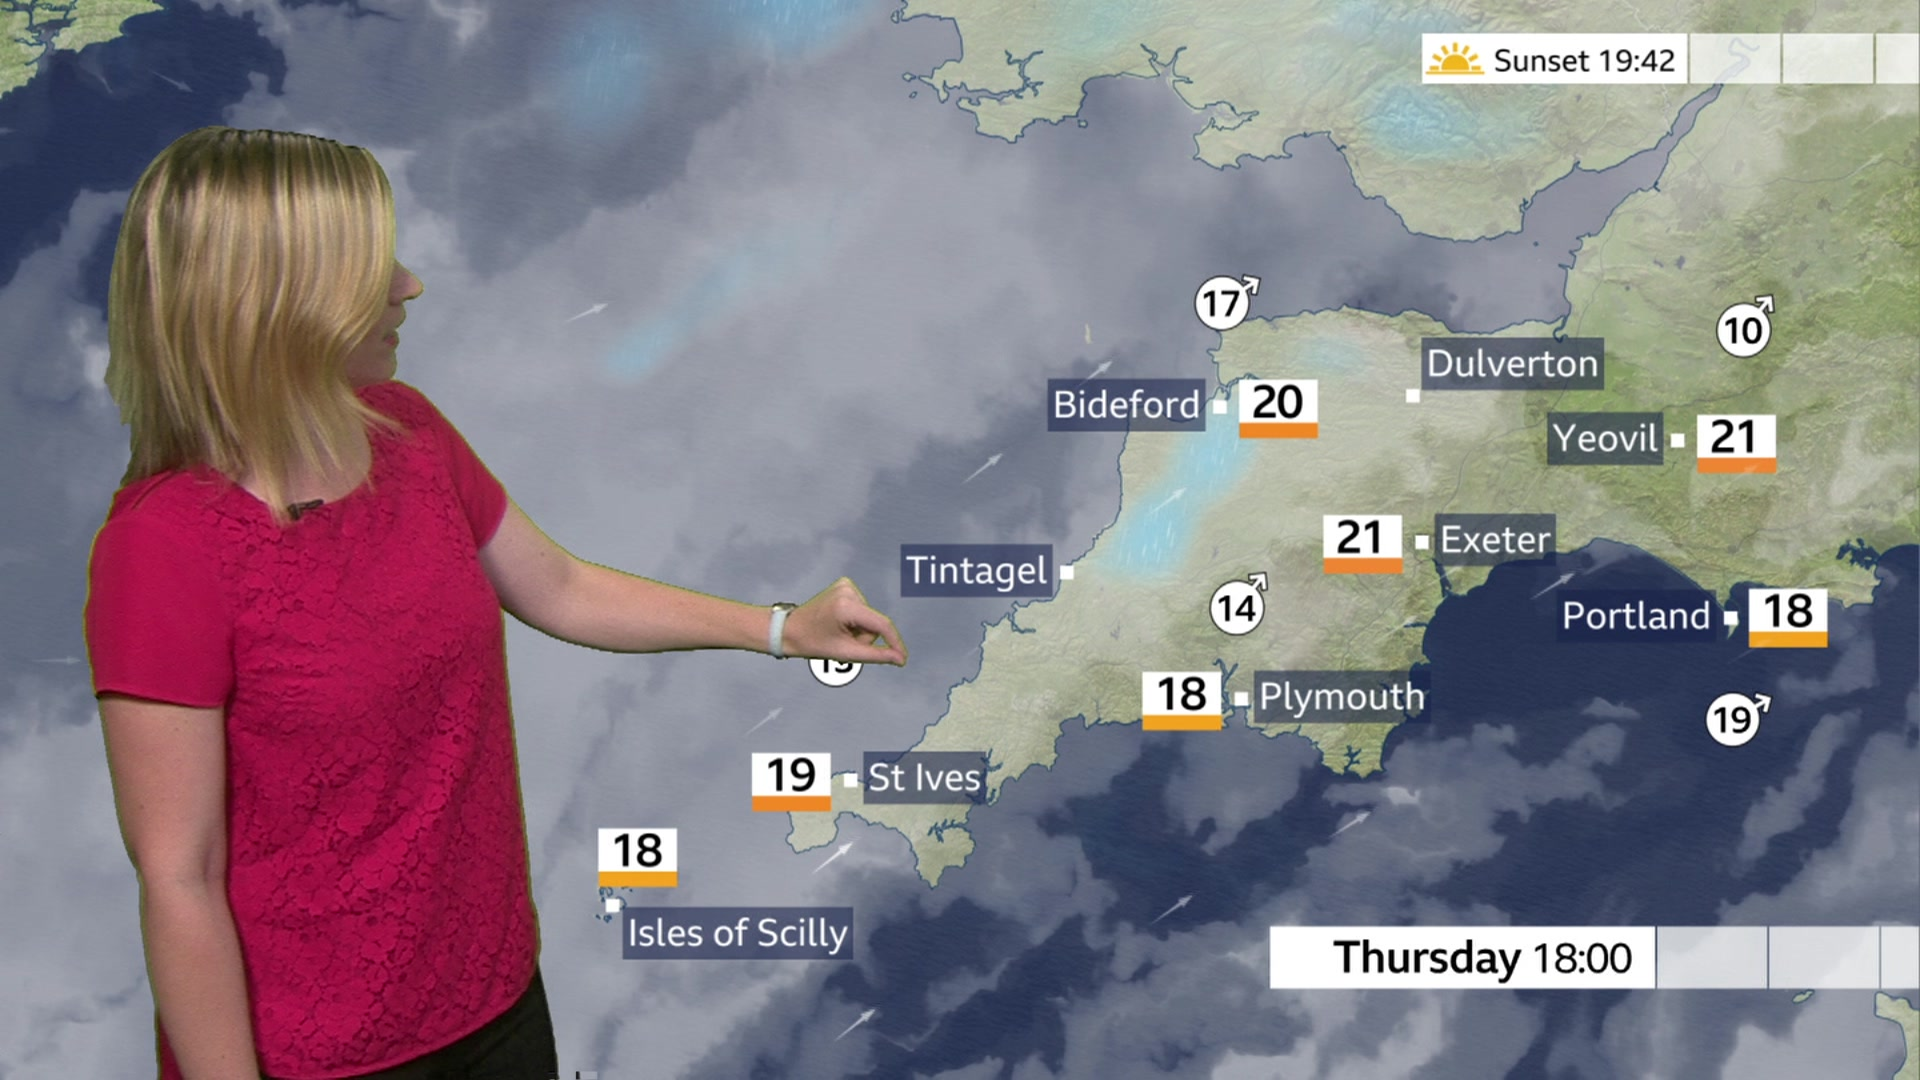 Cornwall and Devon weather: Dull to start